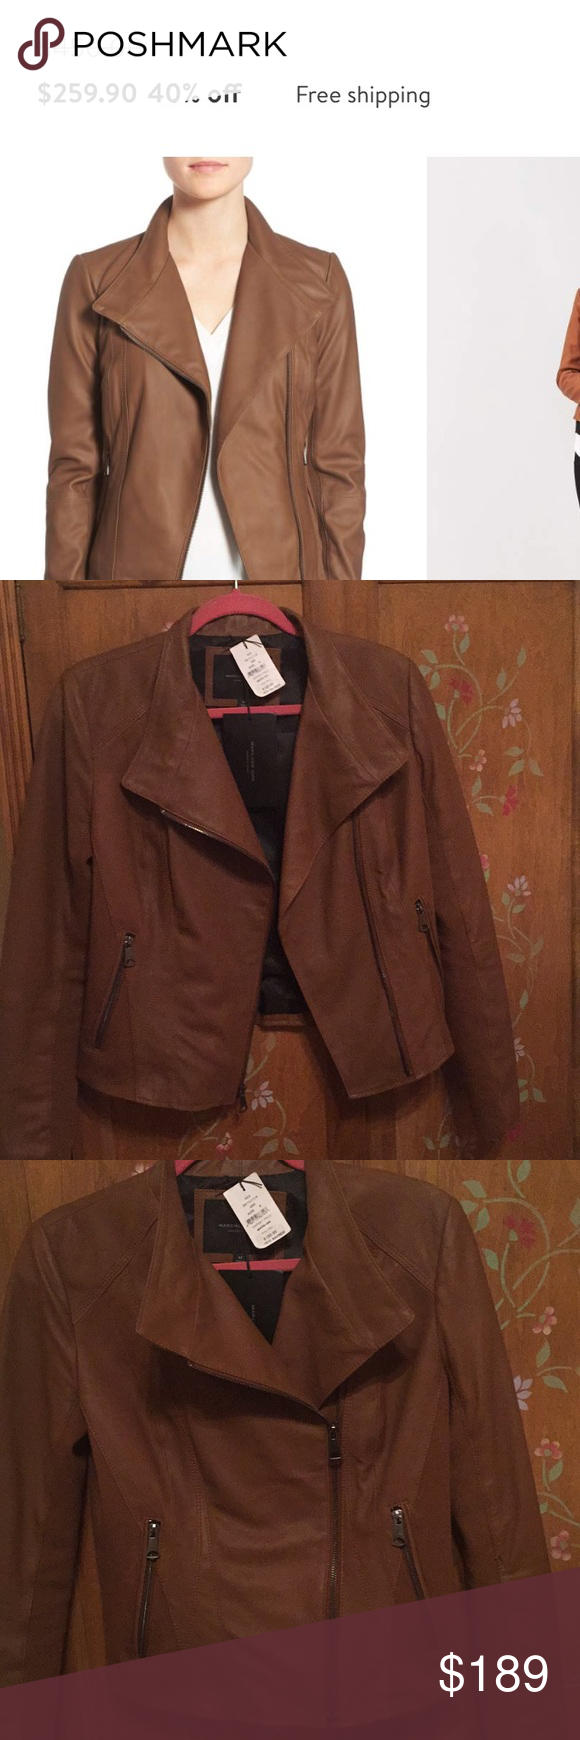 Andrew Marc leather jacket Brand new with tags leather